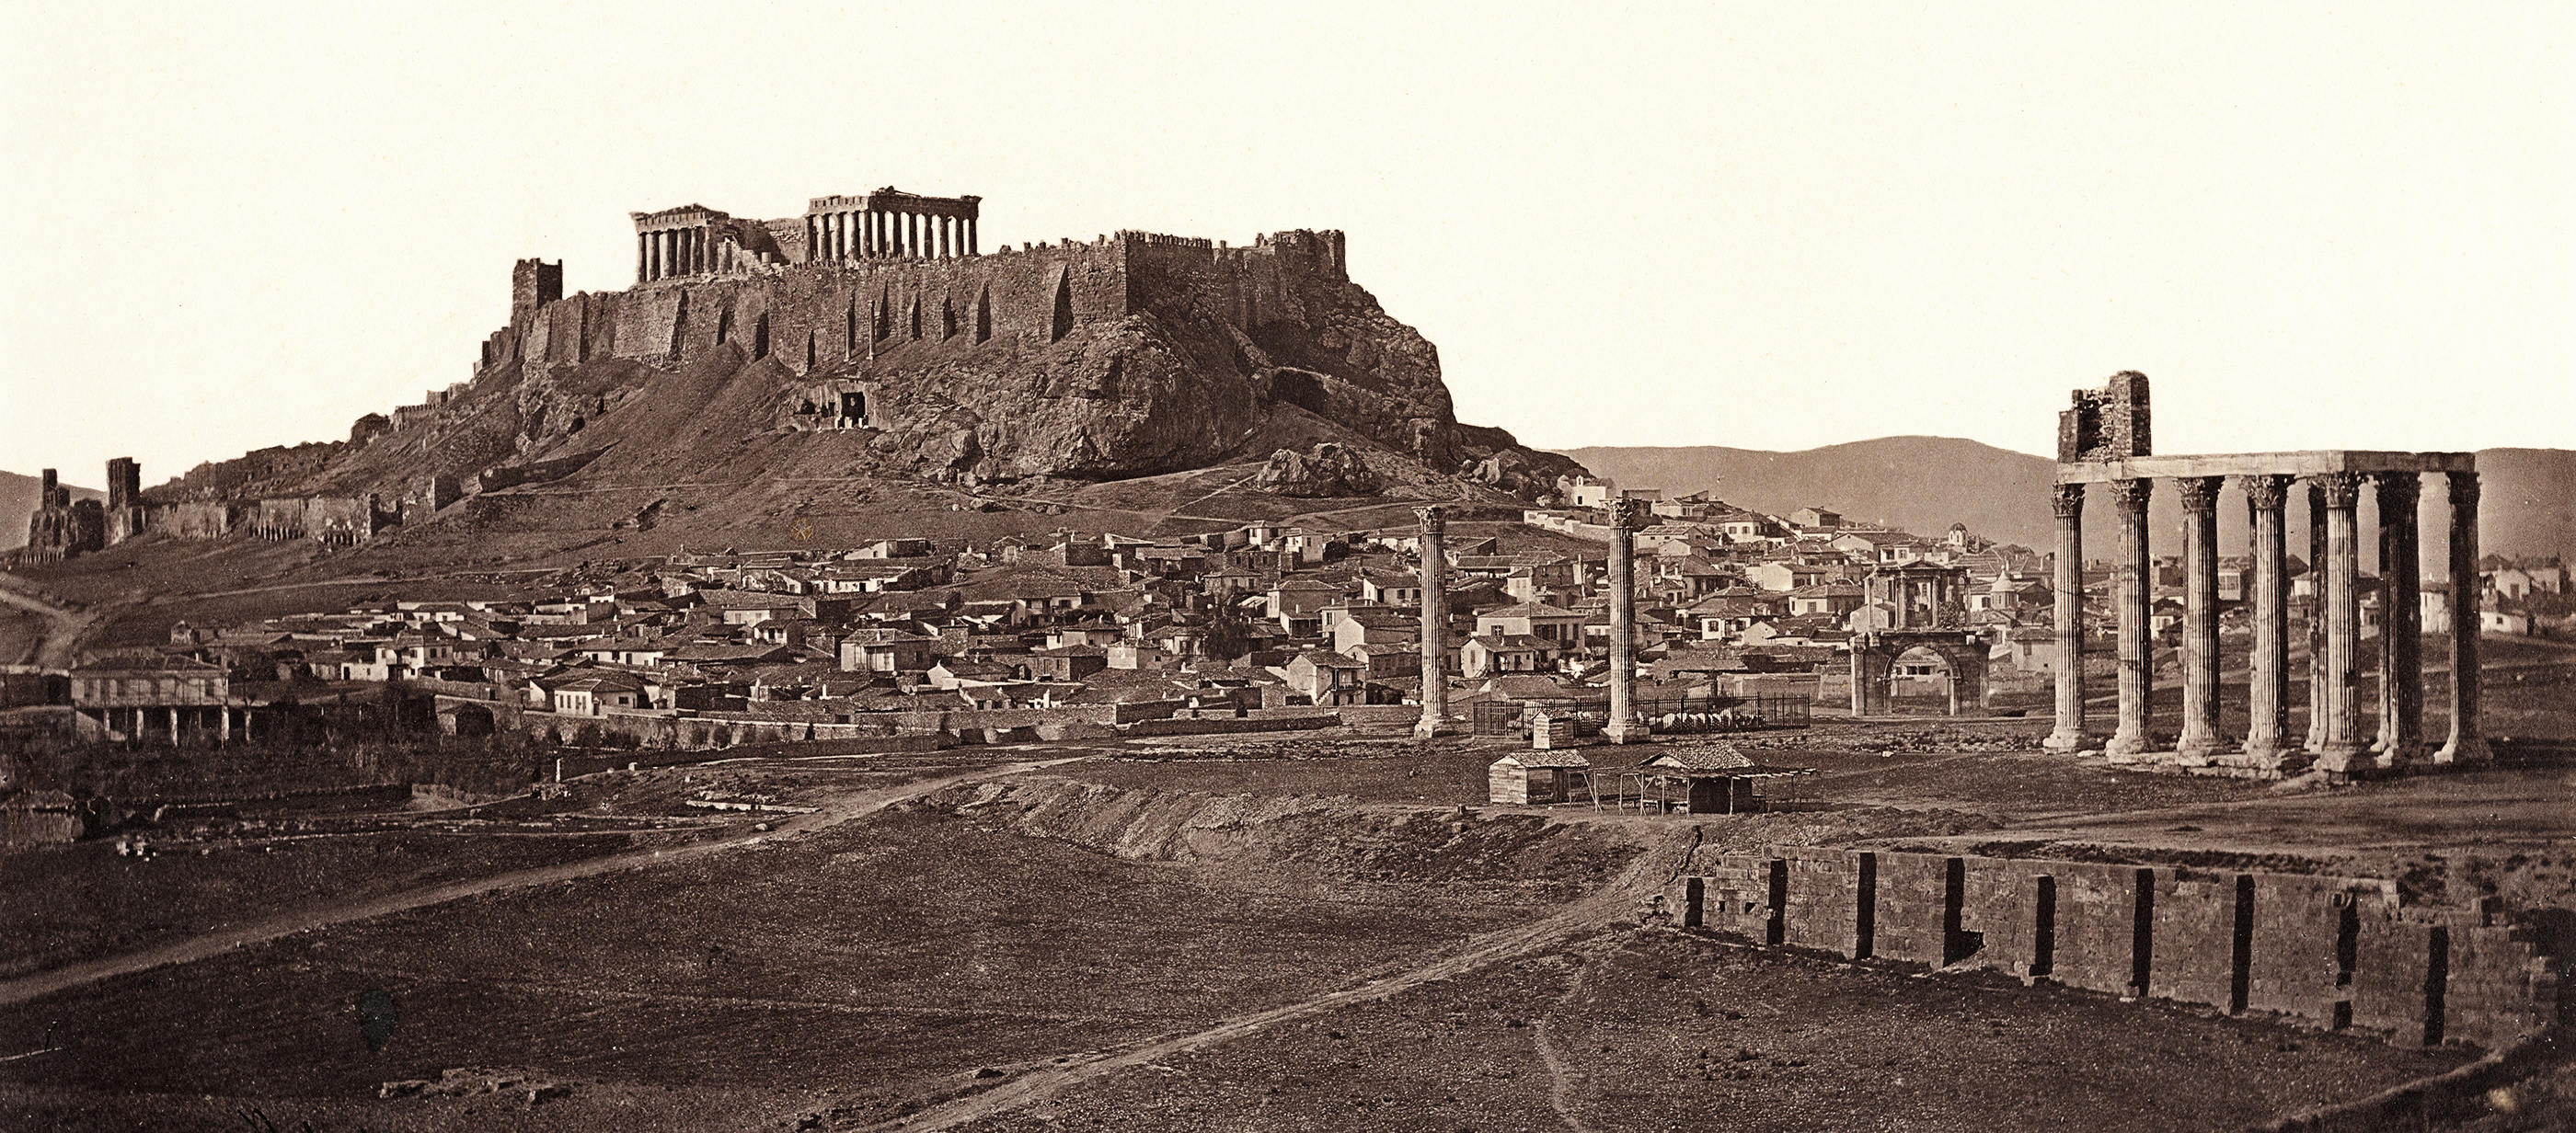 Black and white photograph of the Acropolis in Athens.